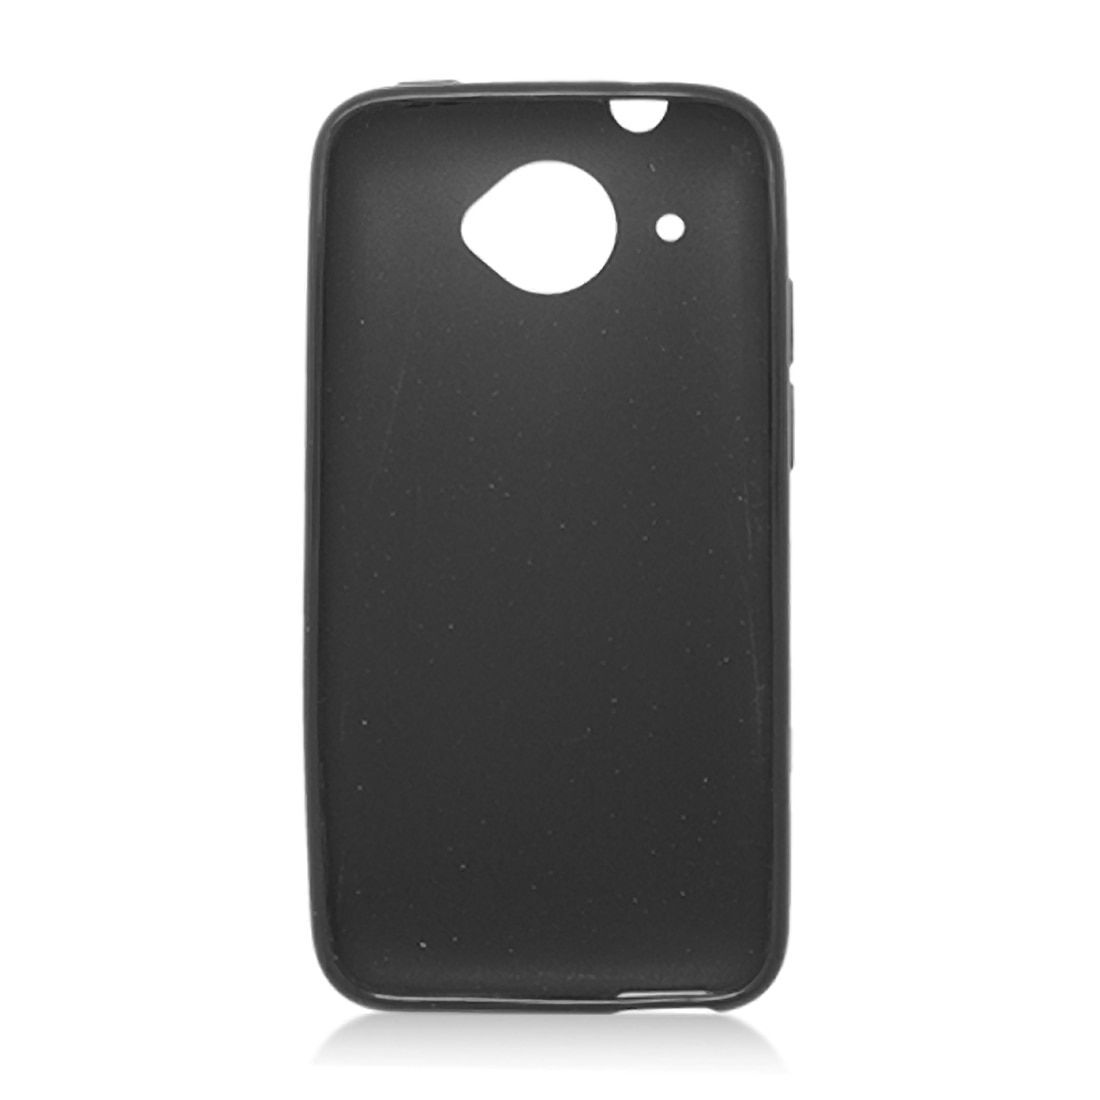 HTC Zara/Desire 601 TPU Cover #PH-SCTHTC601T